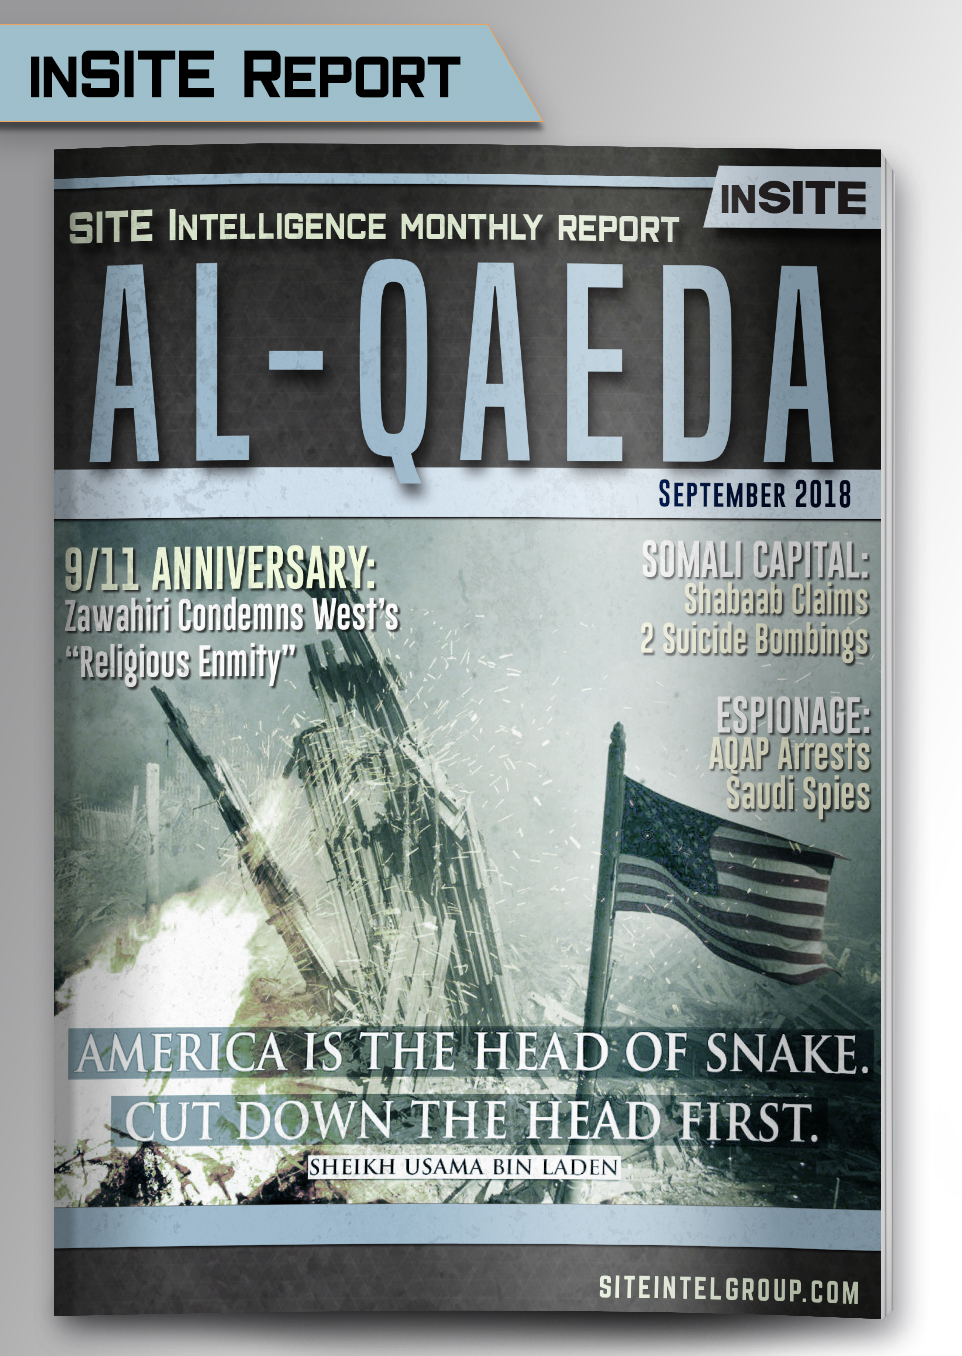 Monthly inSITE Report on Al-Qaeda for September 2018